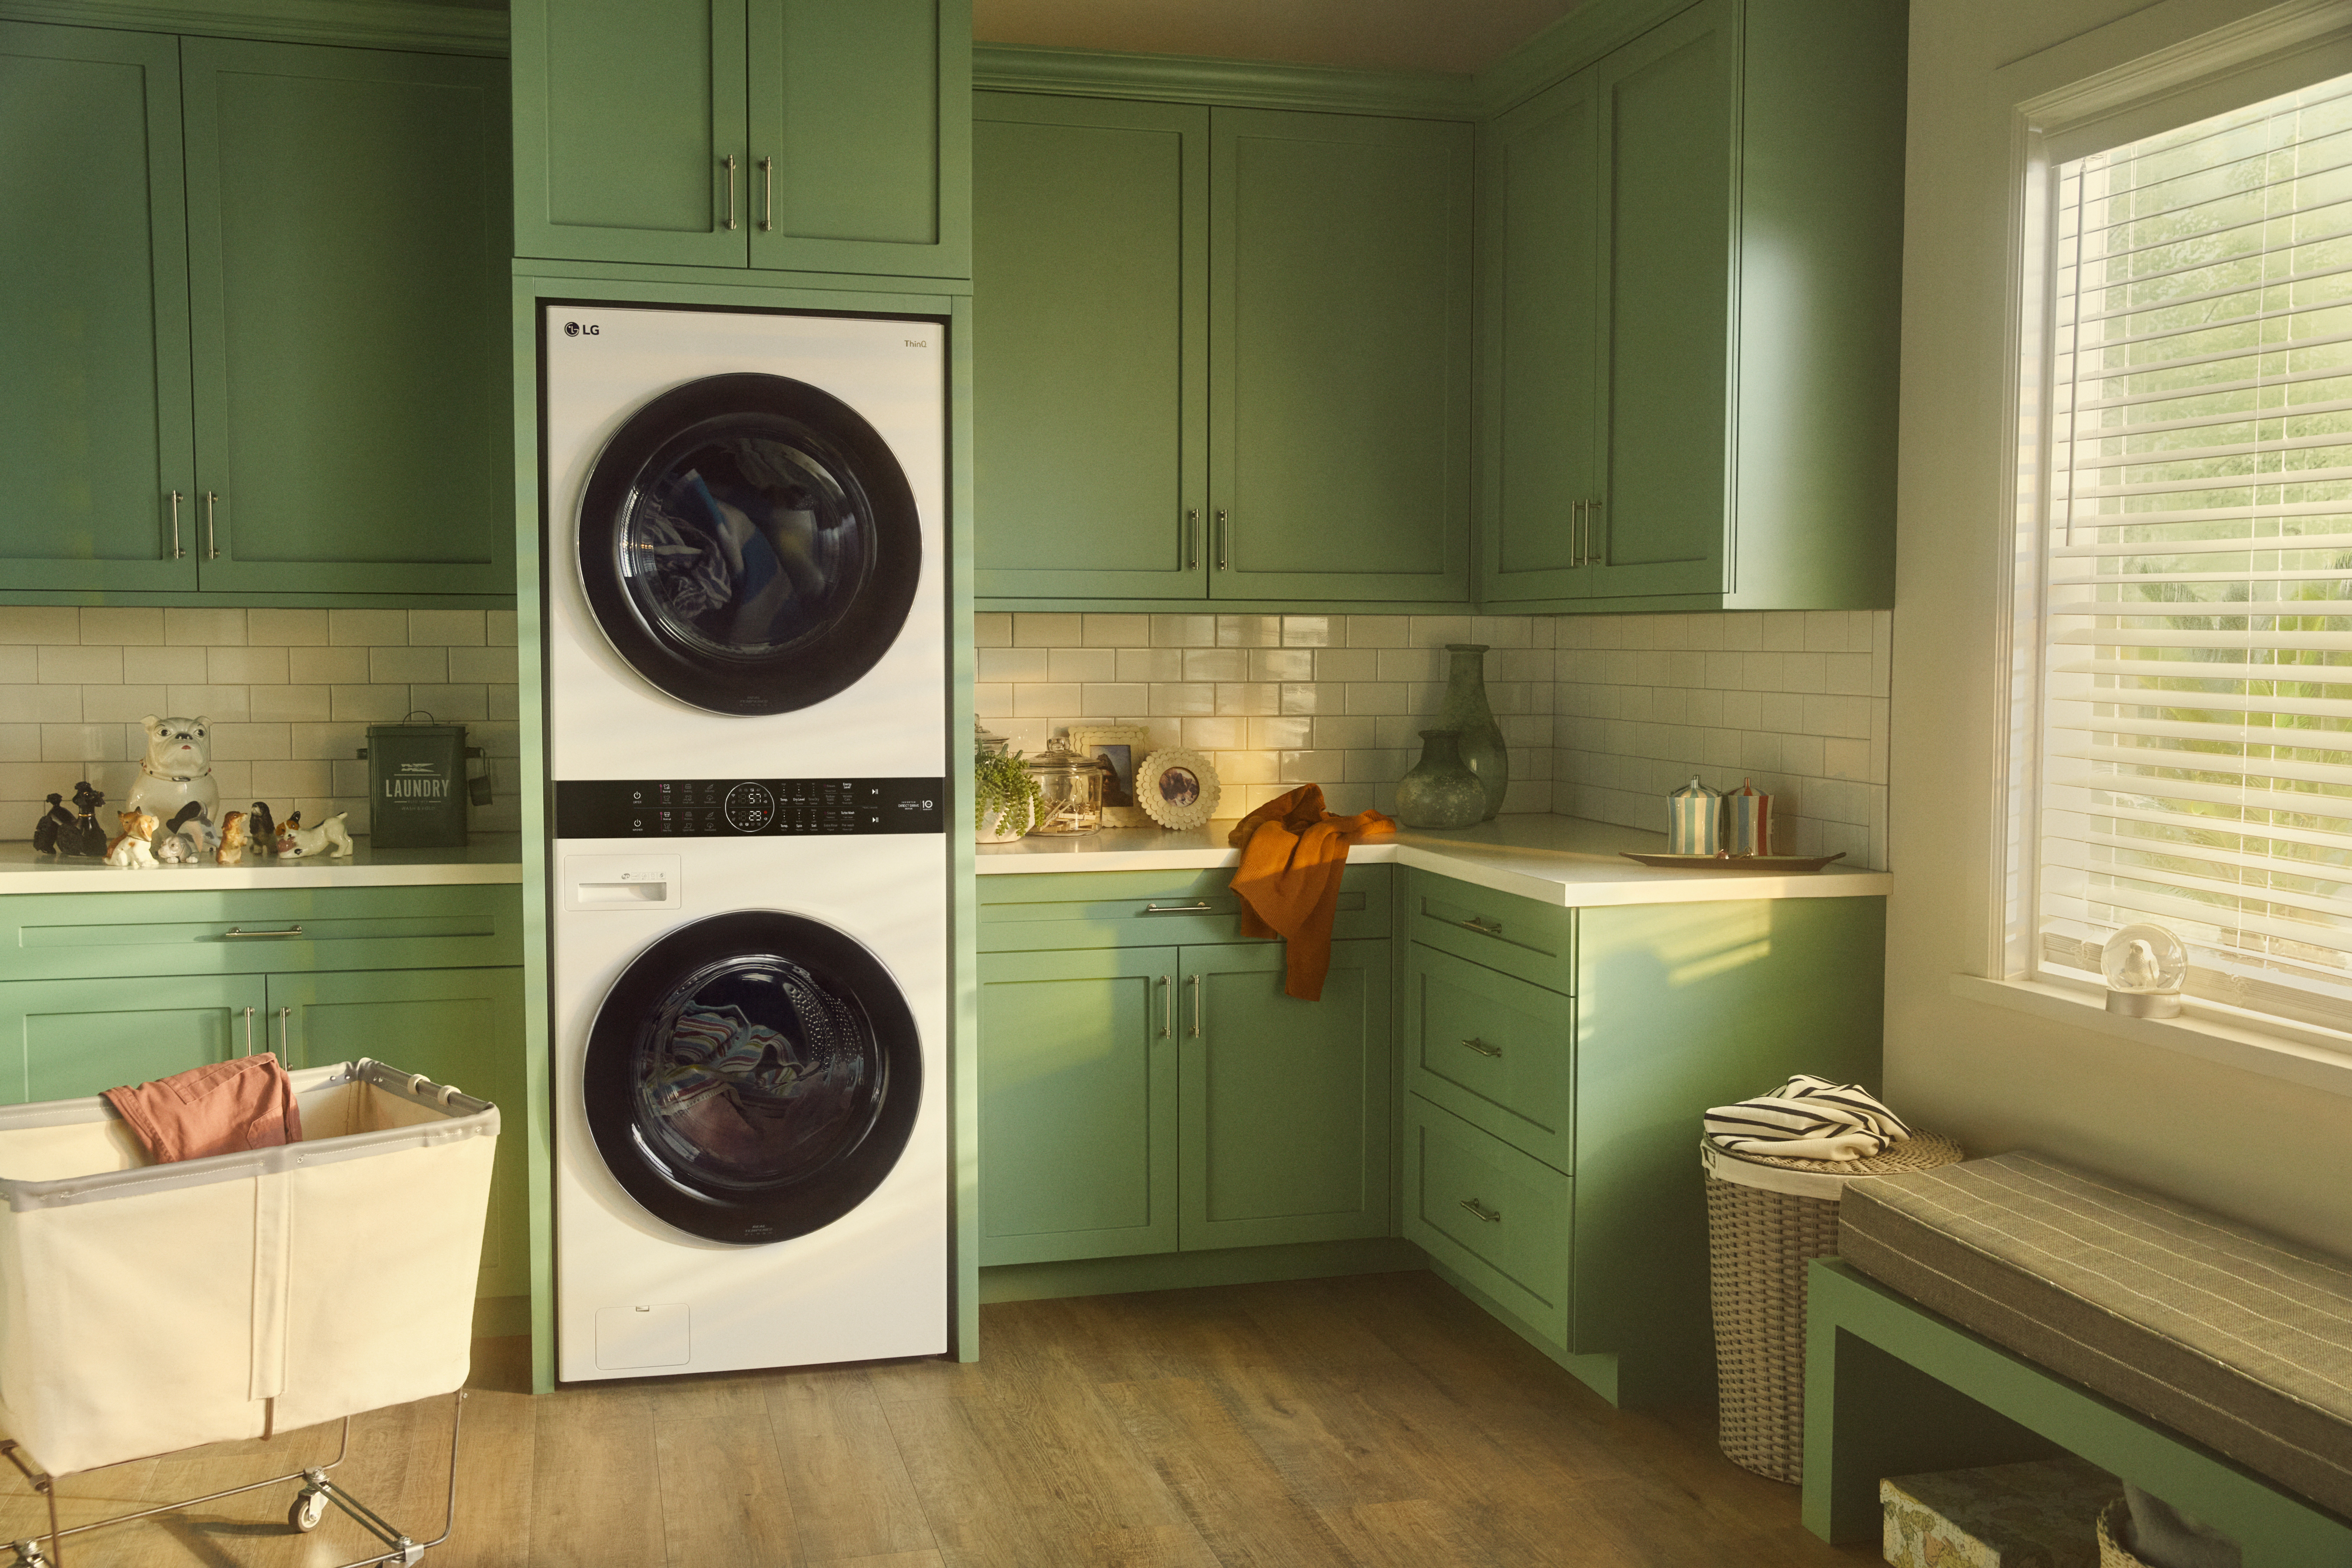 LG stacked laundry pair in modern laundry room